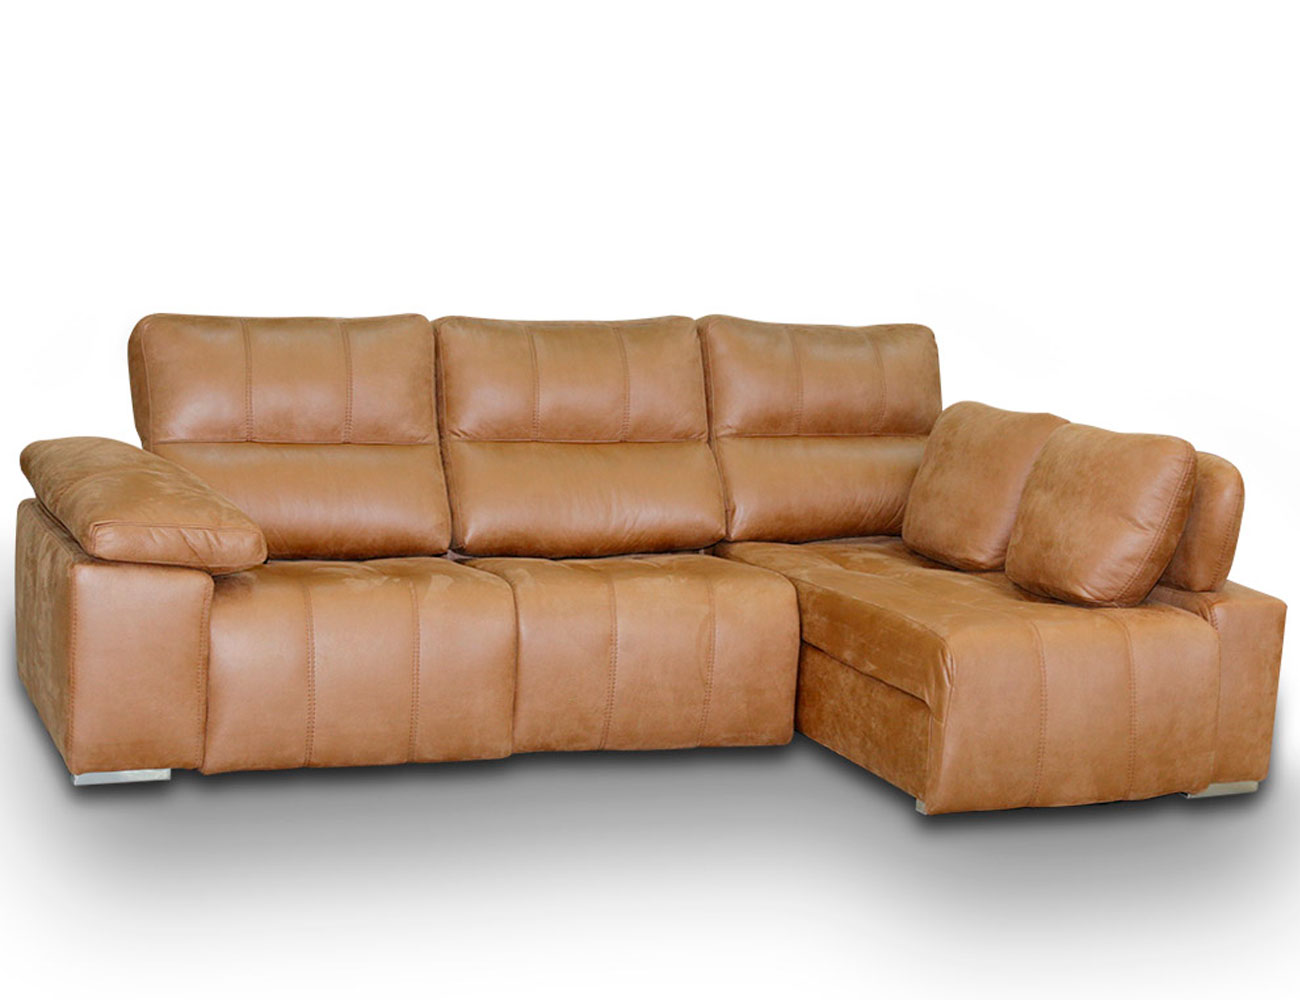 Sofa chaiselongue relax 2 motores anti manchas9